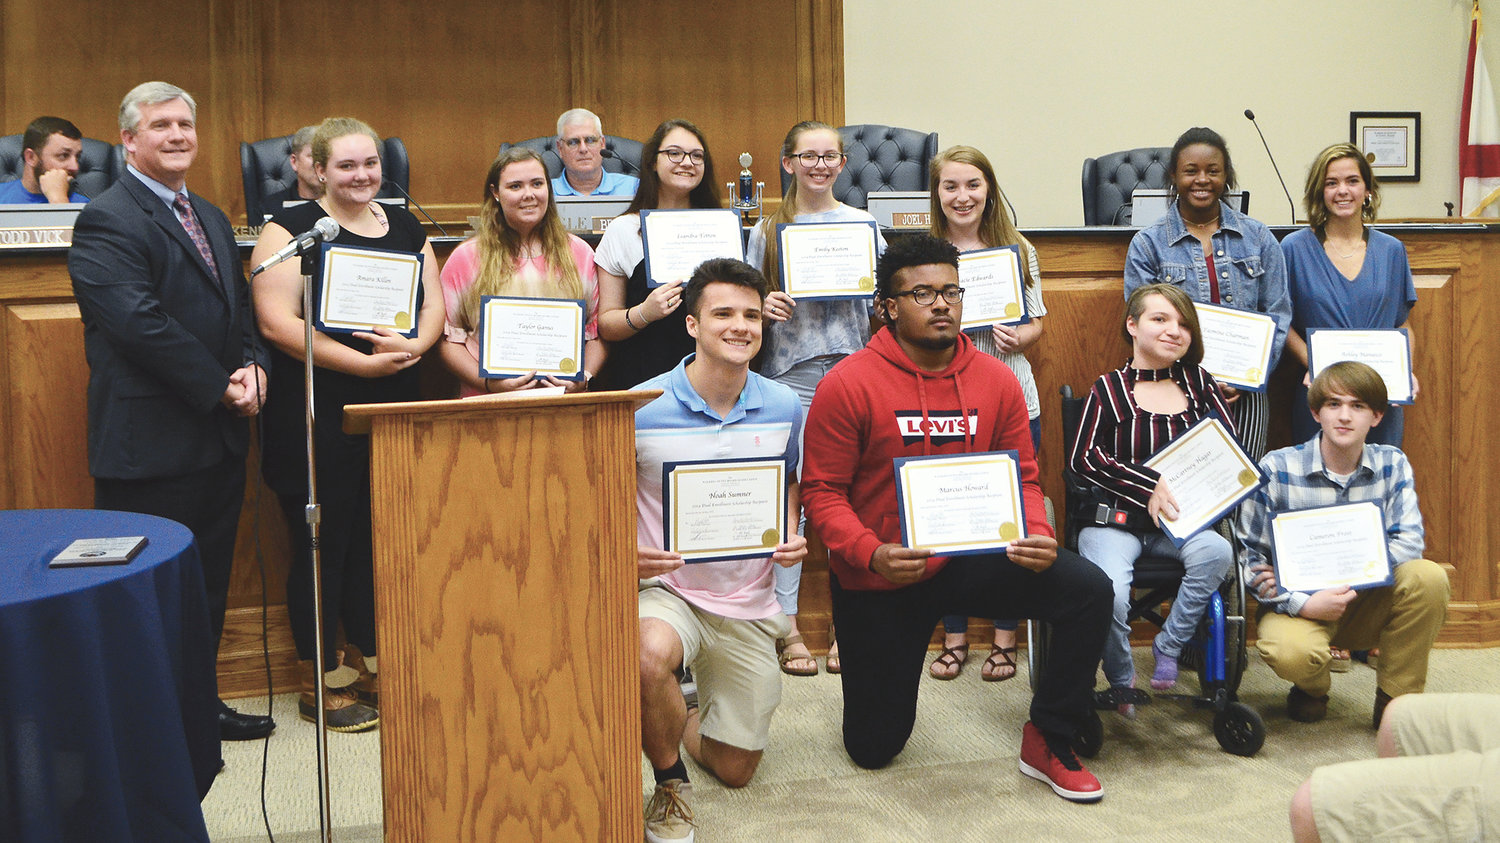 Pictured is a group of students who received dual enrollment scholarships to Bevill State Community College.